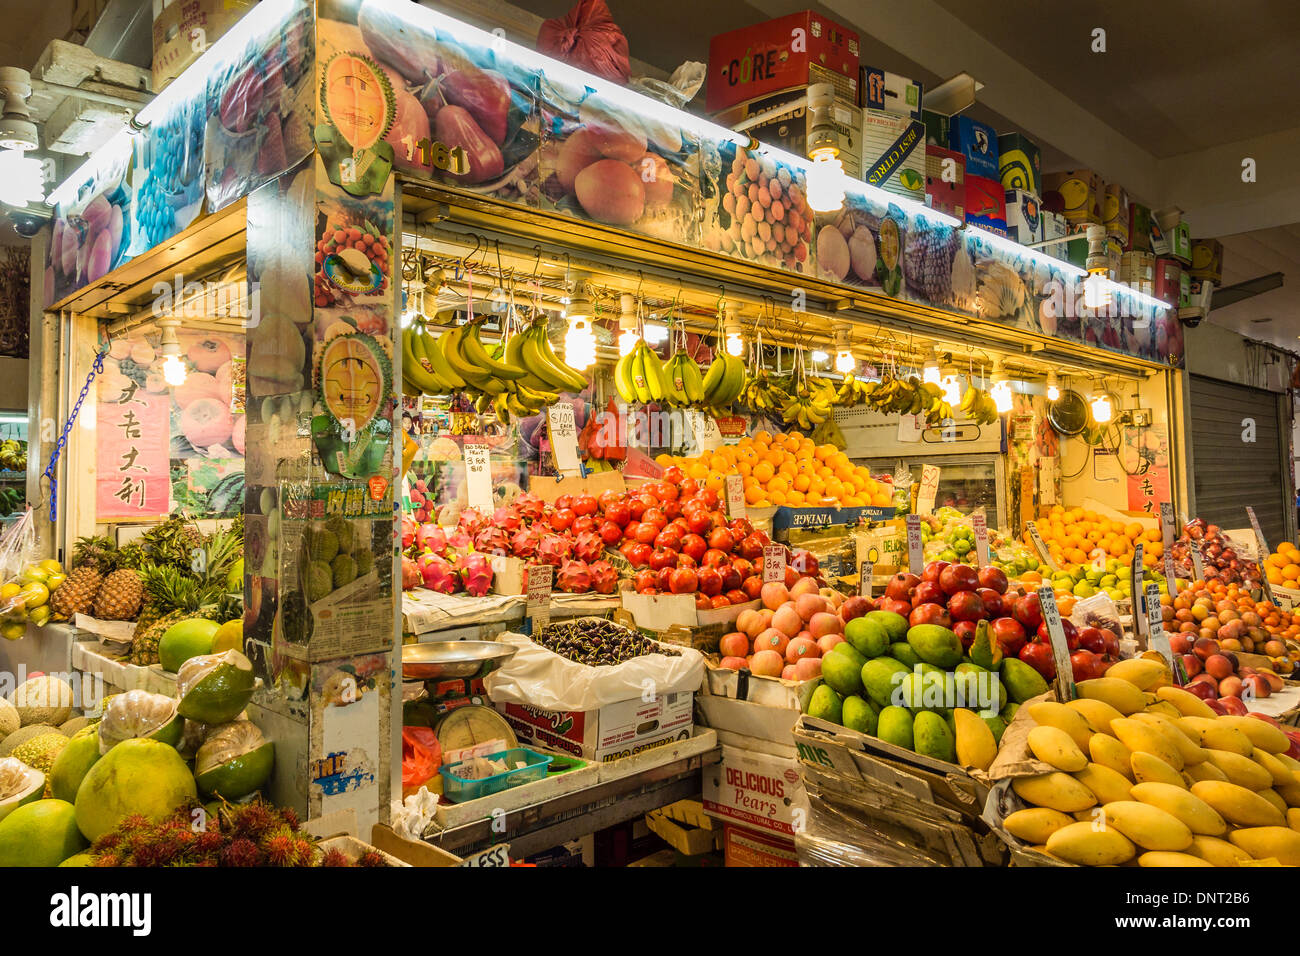 fruit stall in little india market tekka centre singapore stock photo 65067610 alamy. Black Bedroom Furniture Sets. Home Design Ideas